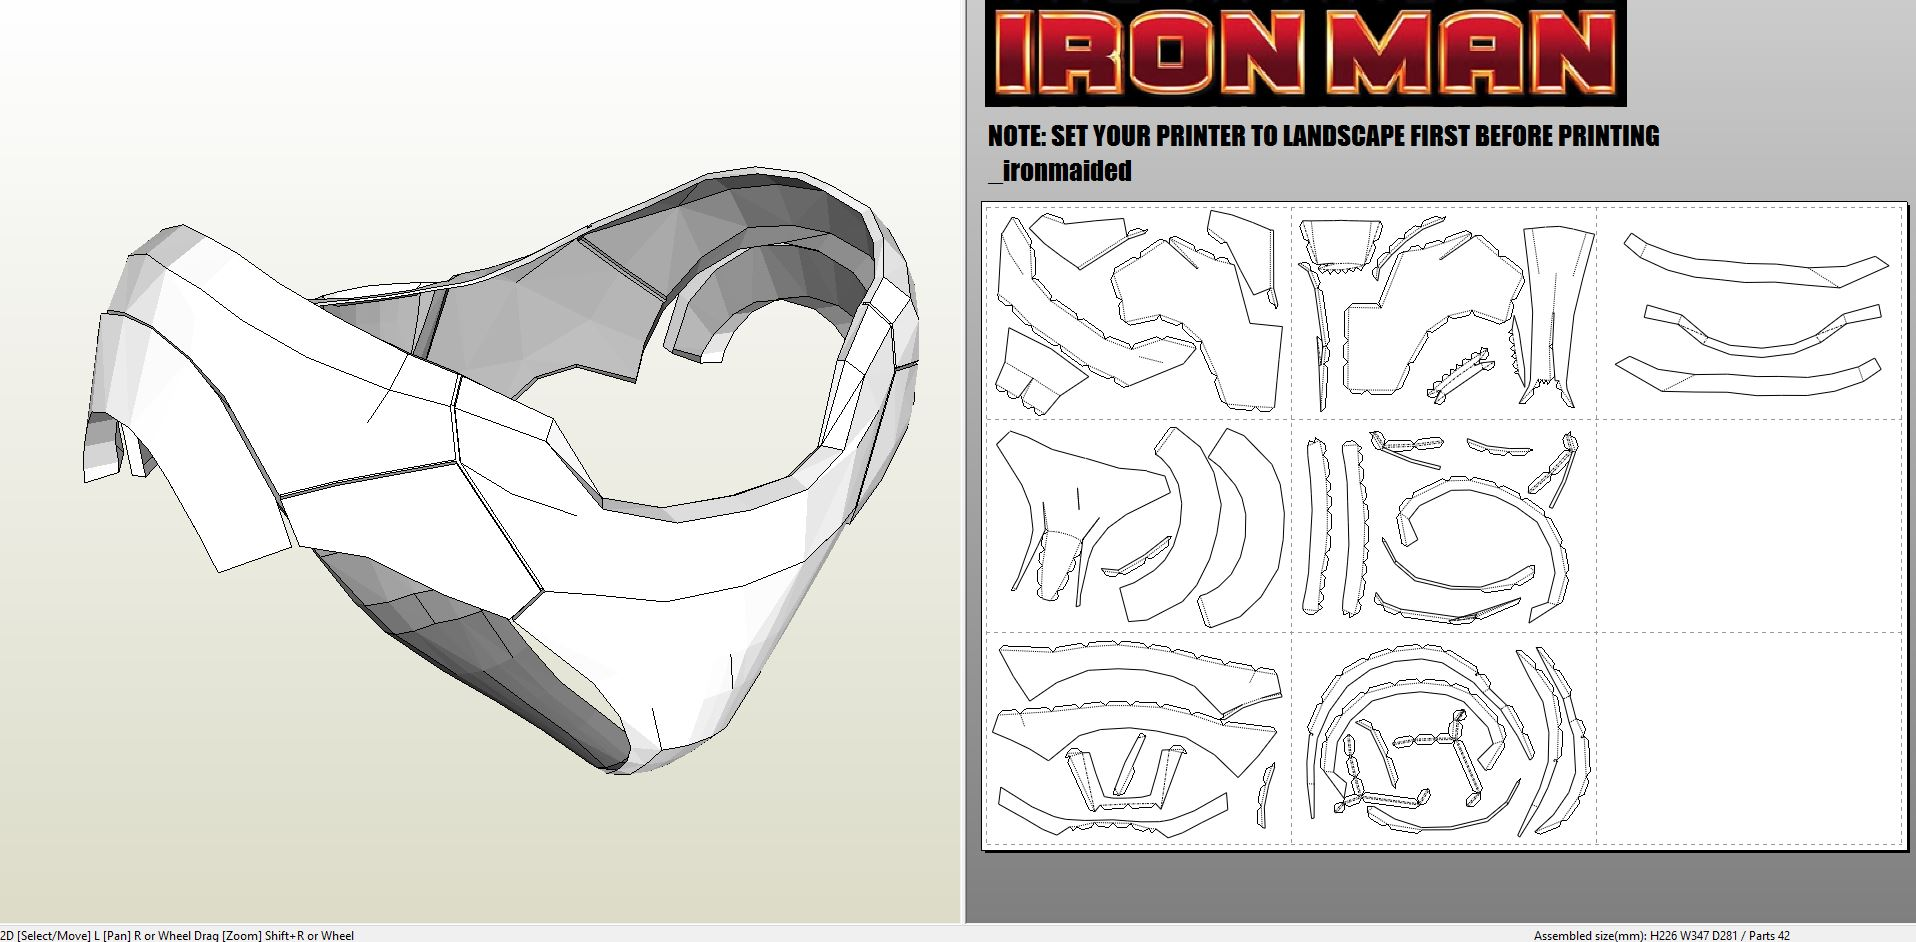 Papercraft pdo file template for iron man mk7 full armor for Iron man foam armor templates